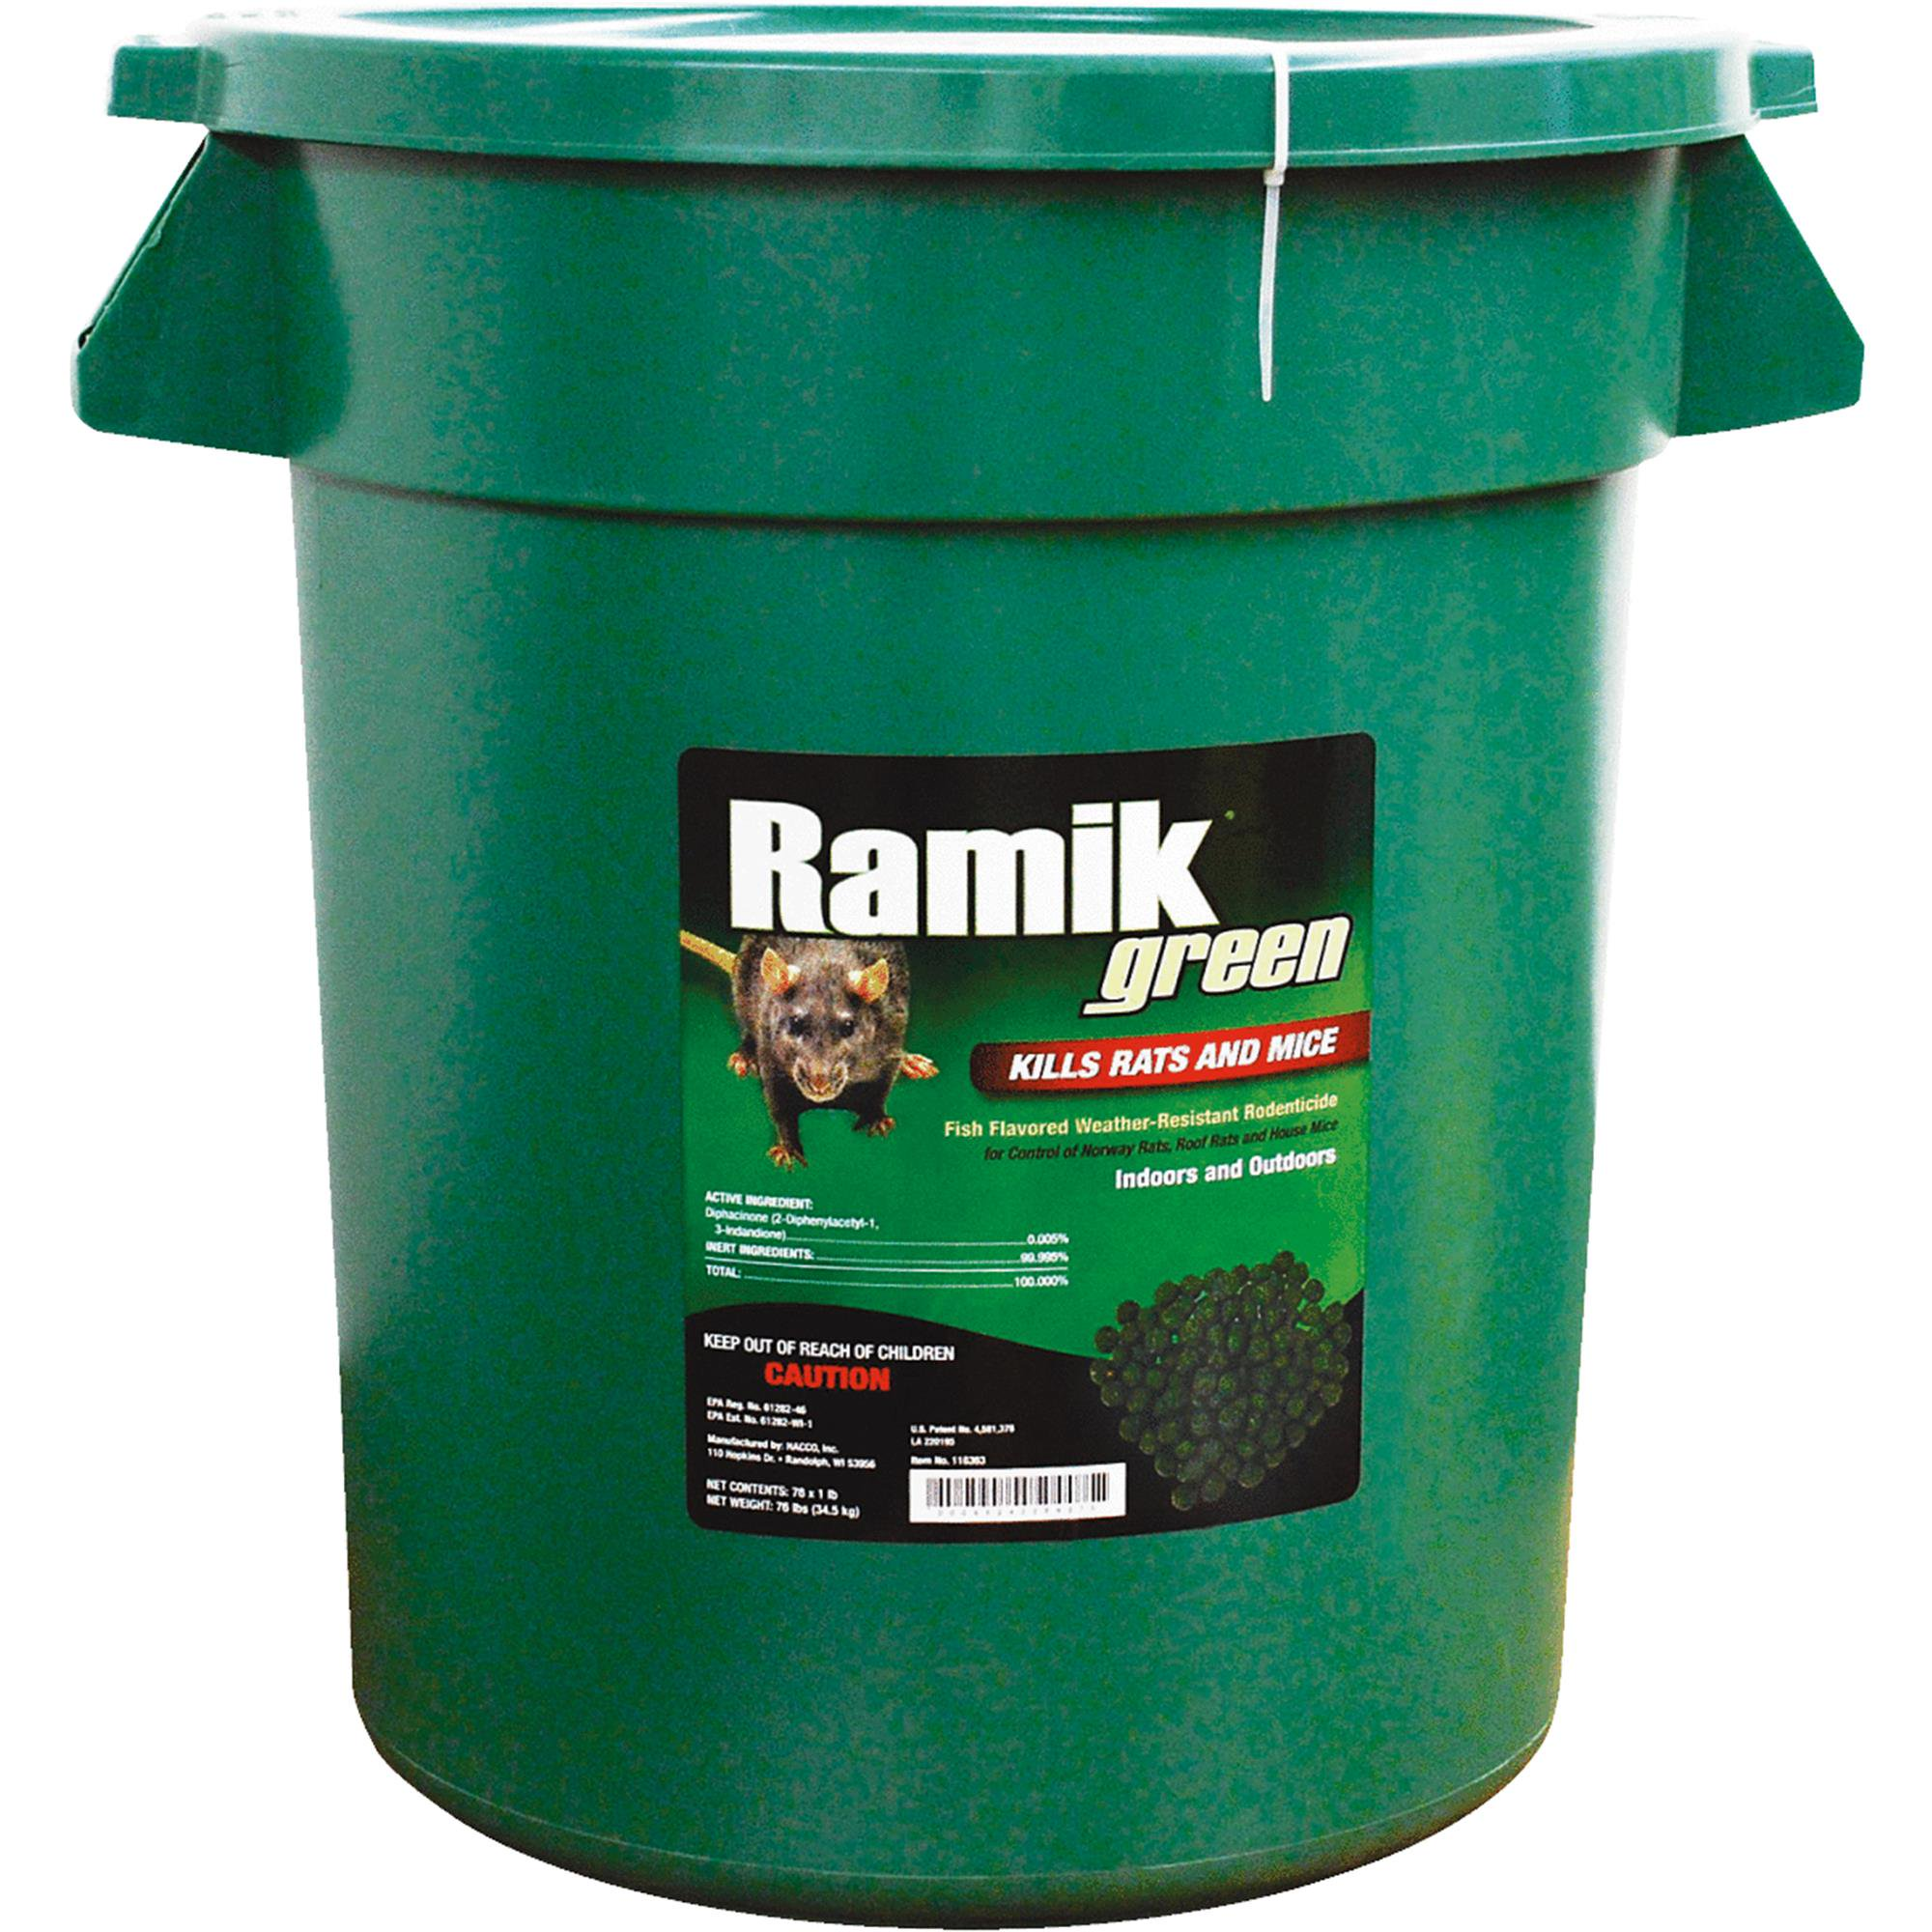 NEOGEN Ramik Green Rat And Mouse Poison Pellets Bucket